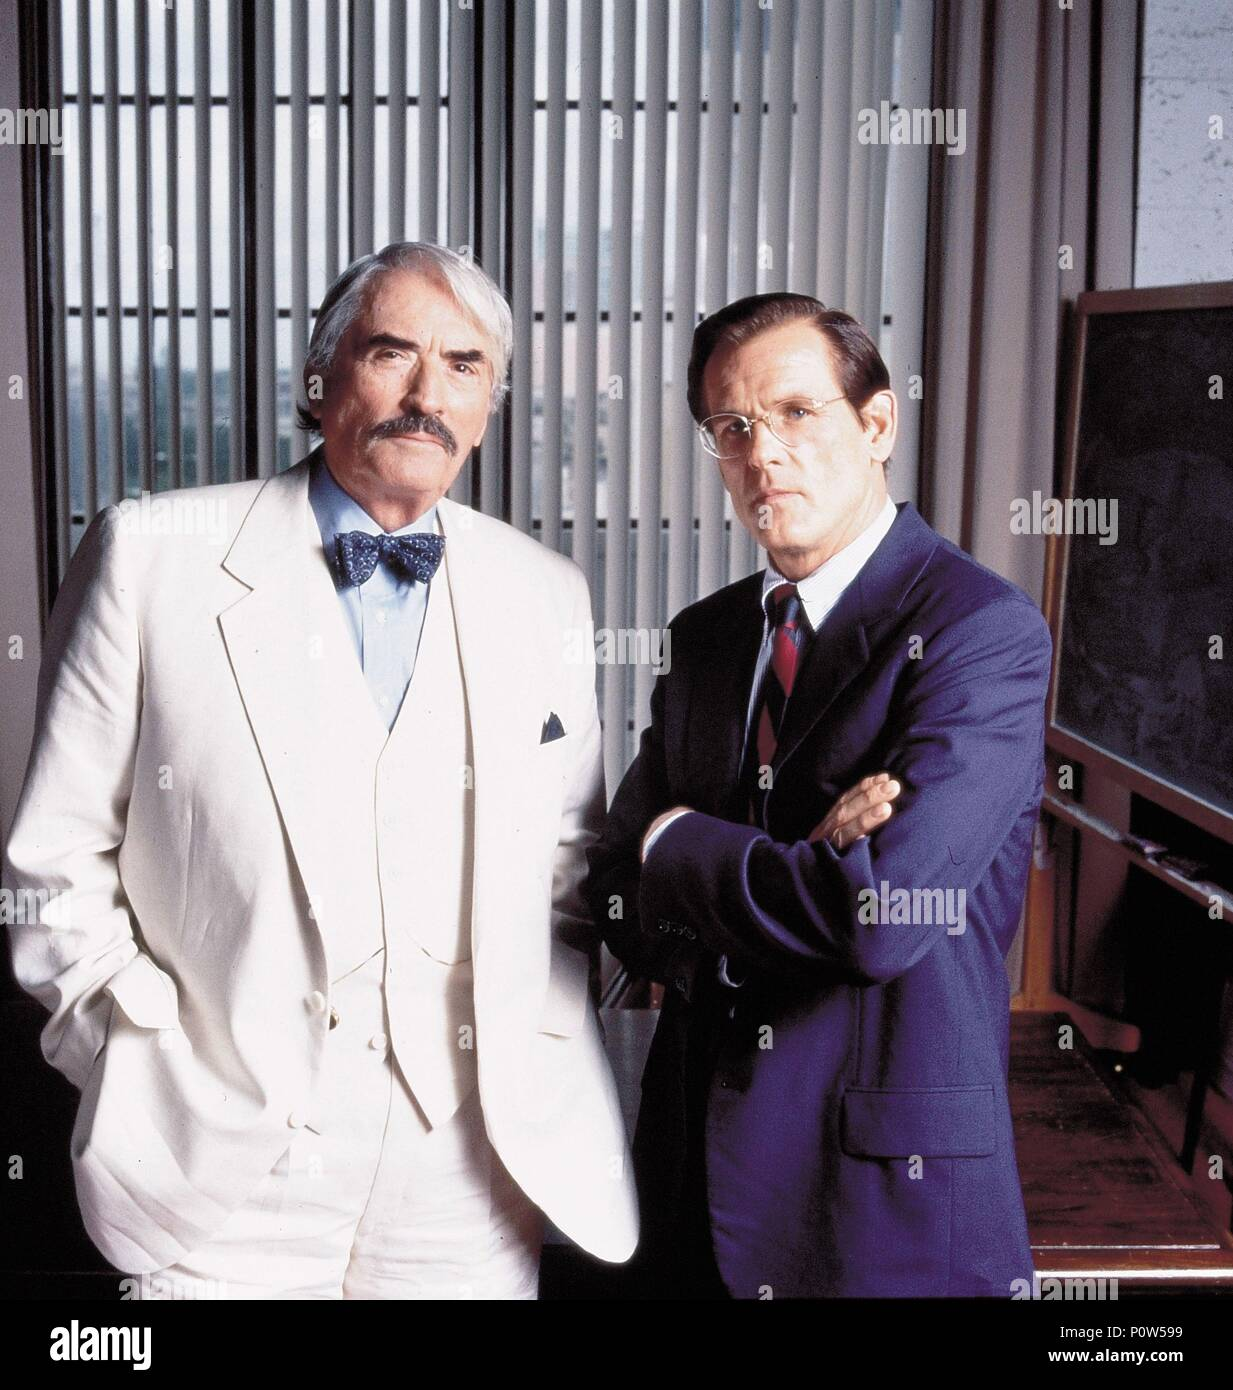 Cape Fear 1991 Gregory Peck High Resolution Stock Photography and Images -  Alamy